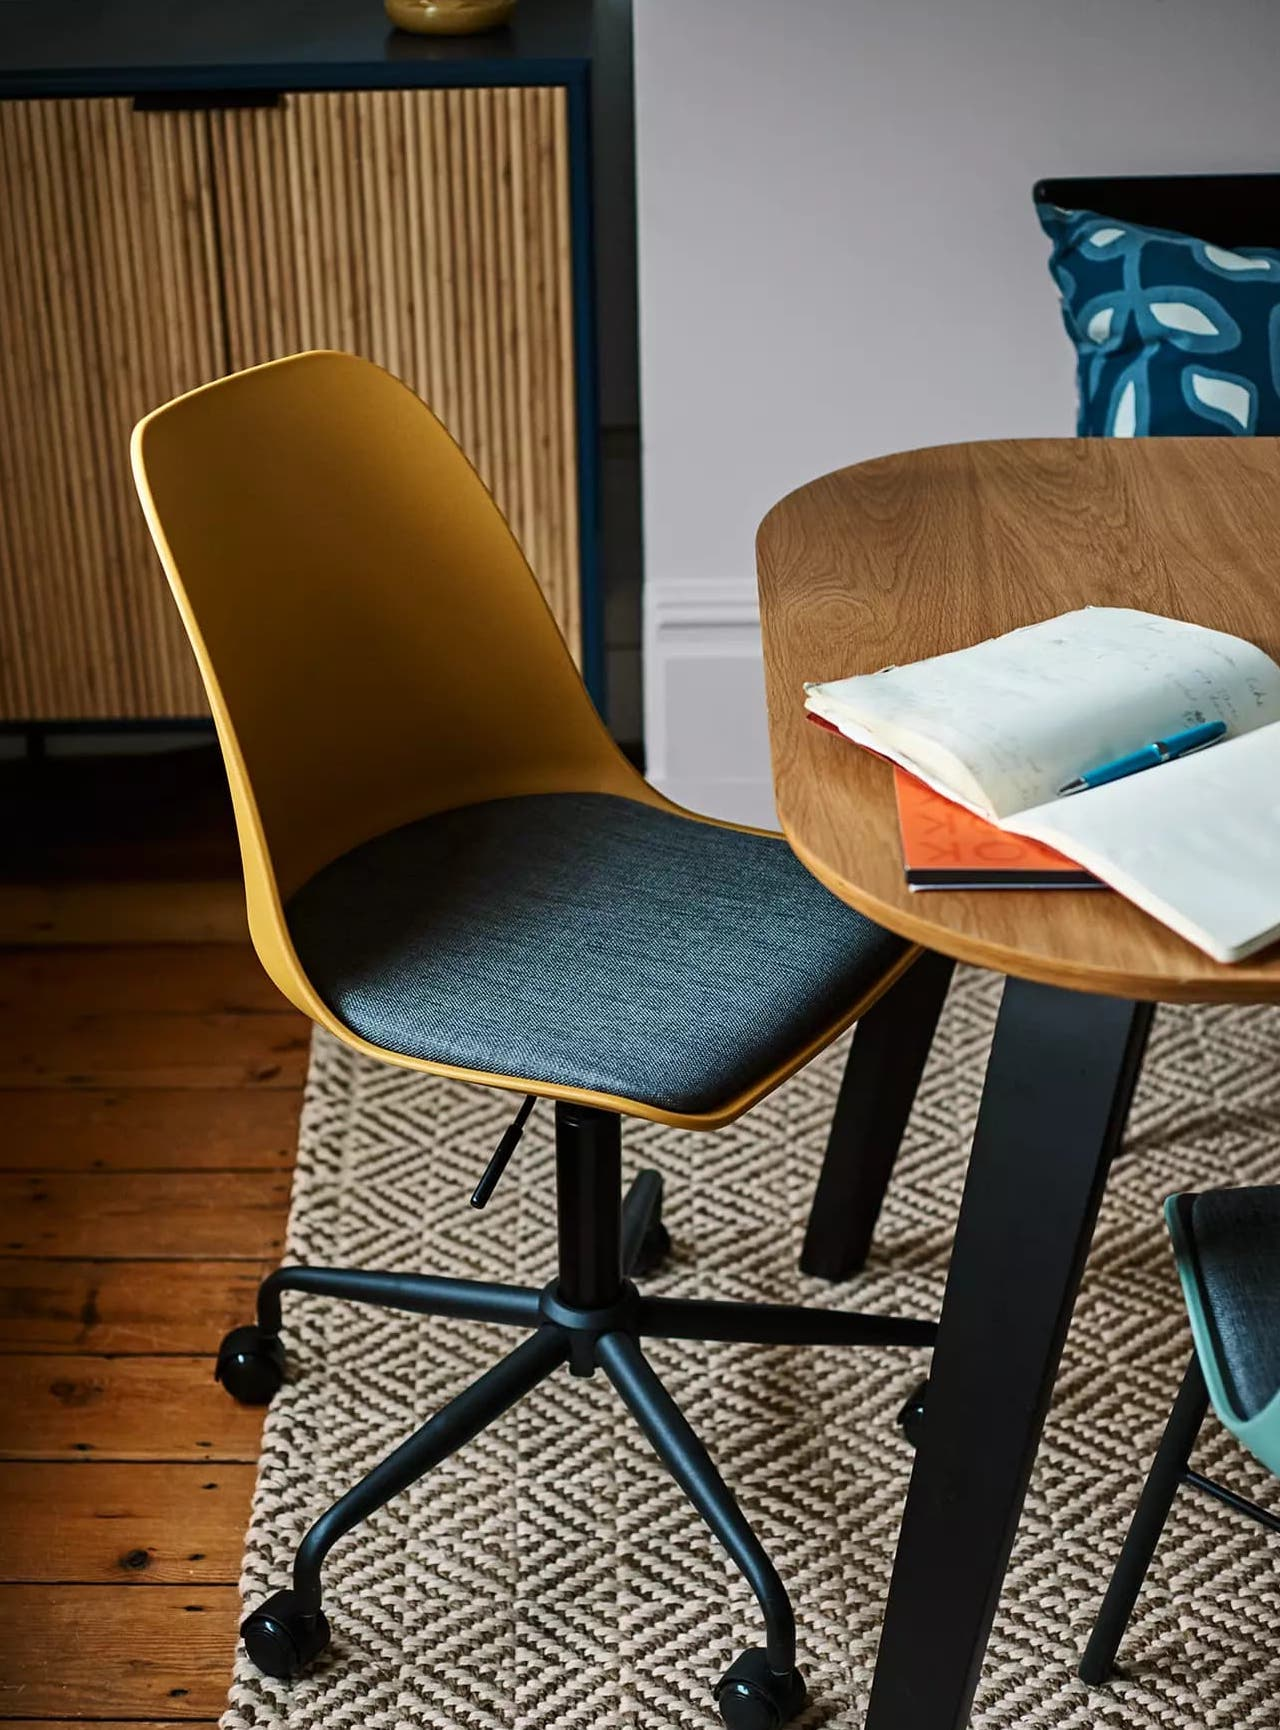 office chair by ANYDAY john lewis collection